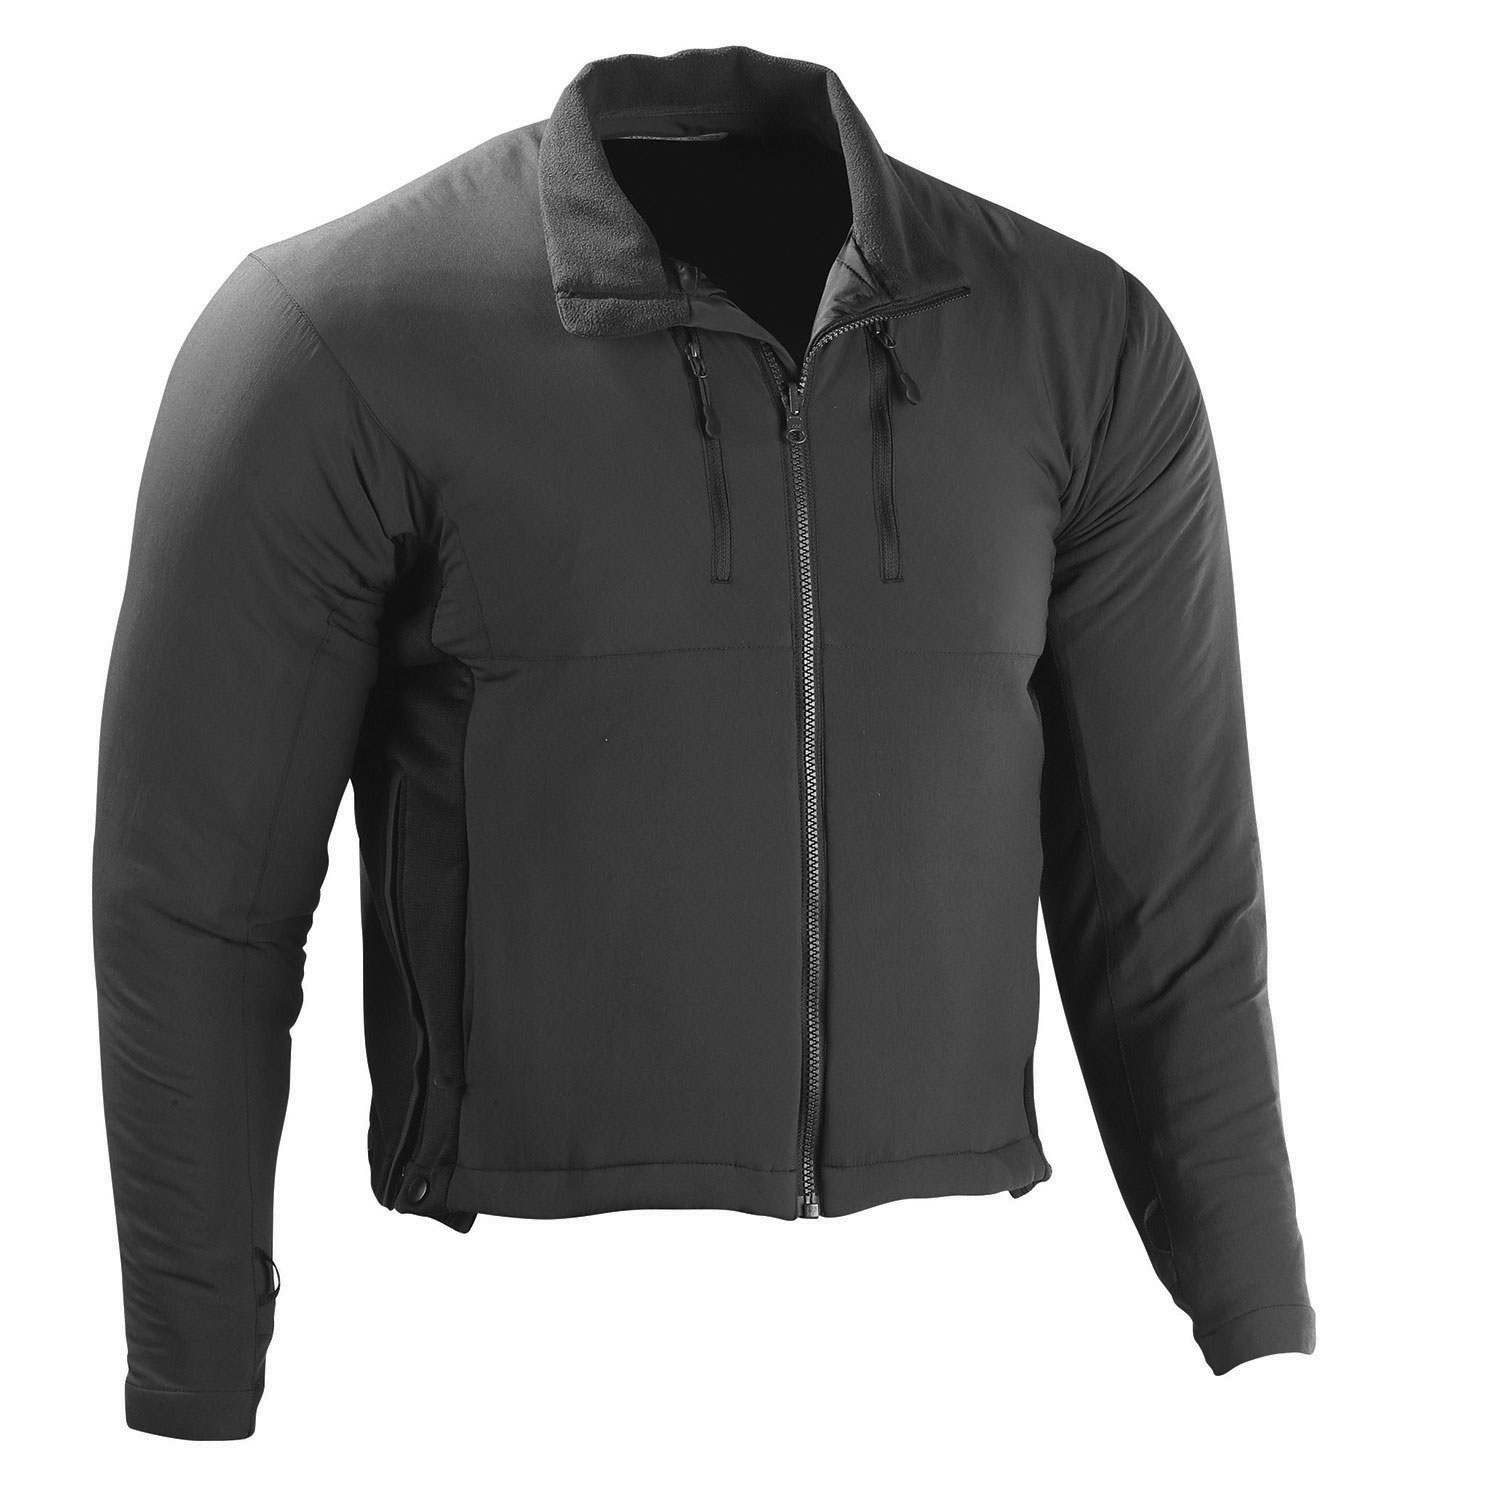 Flying Cross LayerTech 37.5 Performance Loft Jacket/Liner